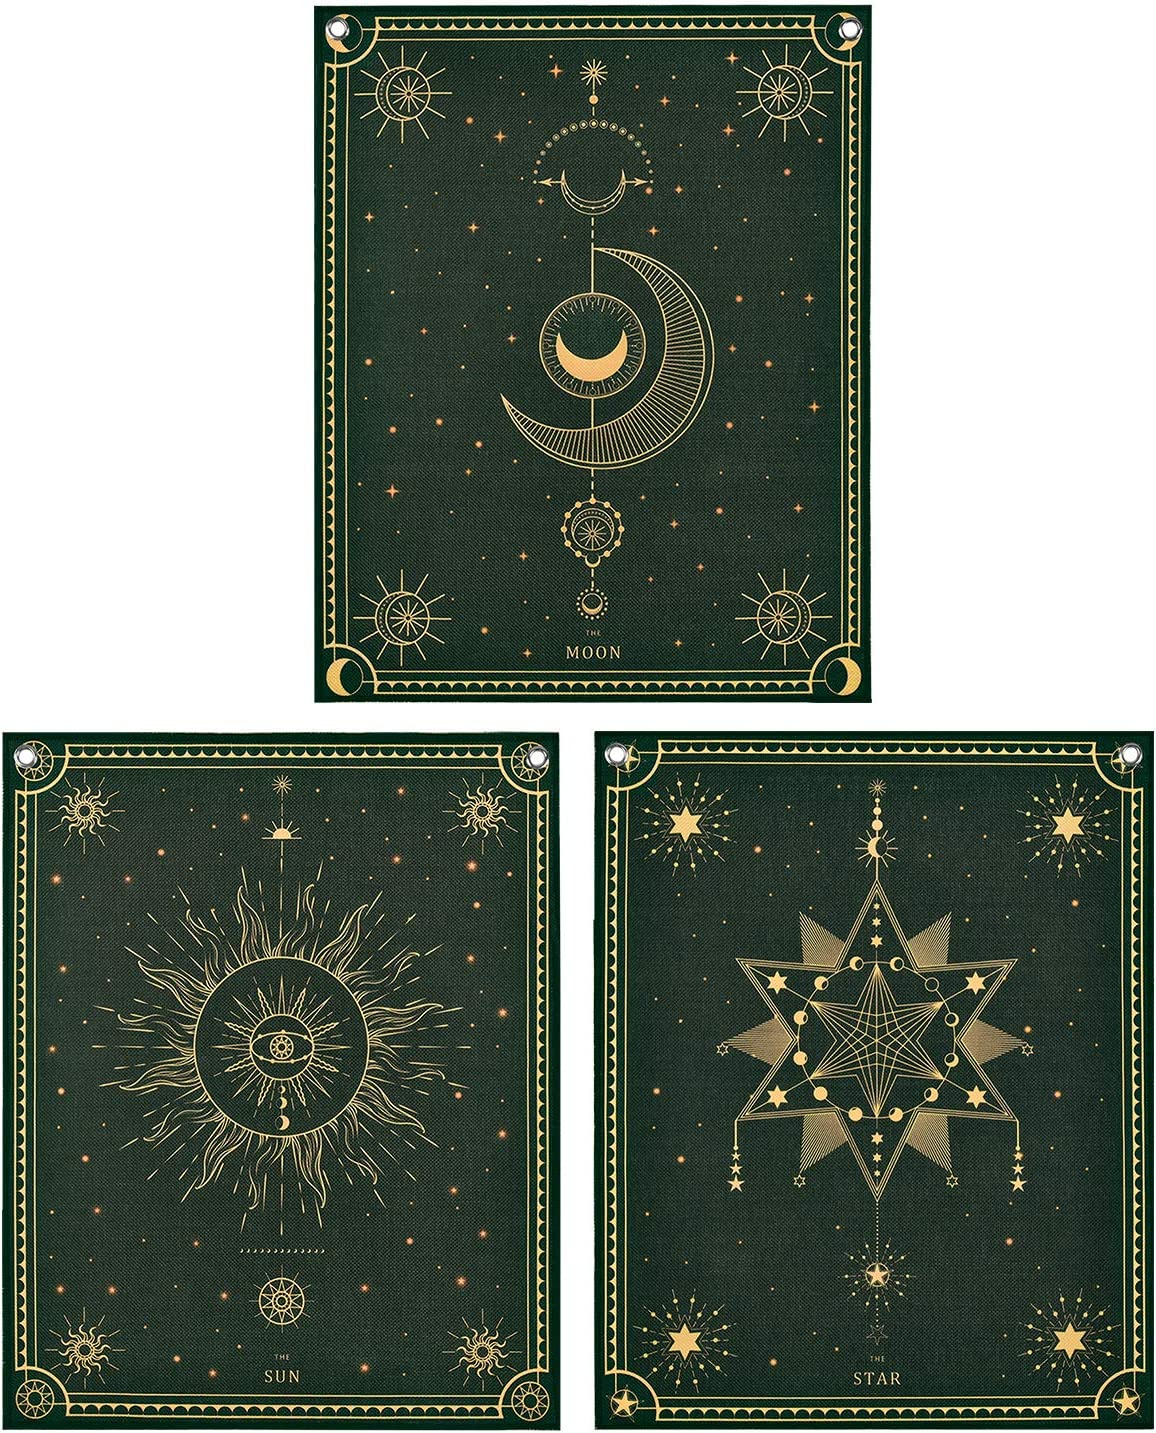 Pack of 3 Tarot Tapestry the Sun Moon Star Tarot Tapestry Tarot Card Tapestries Dark Tapestry Mysterious Medieval Europe Tapestry Wall Hanging with Nails for Room (11.8 x 15.7 inches)